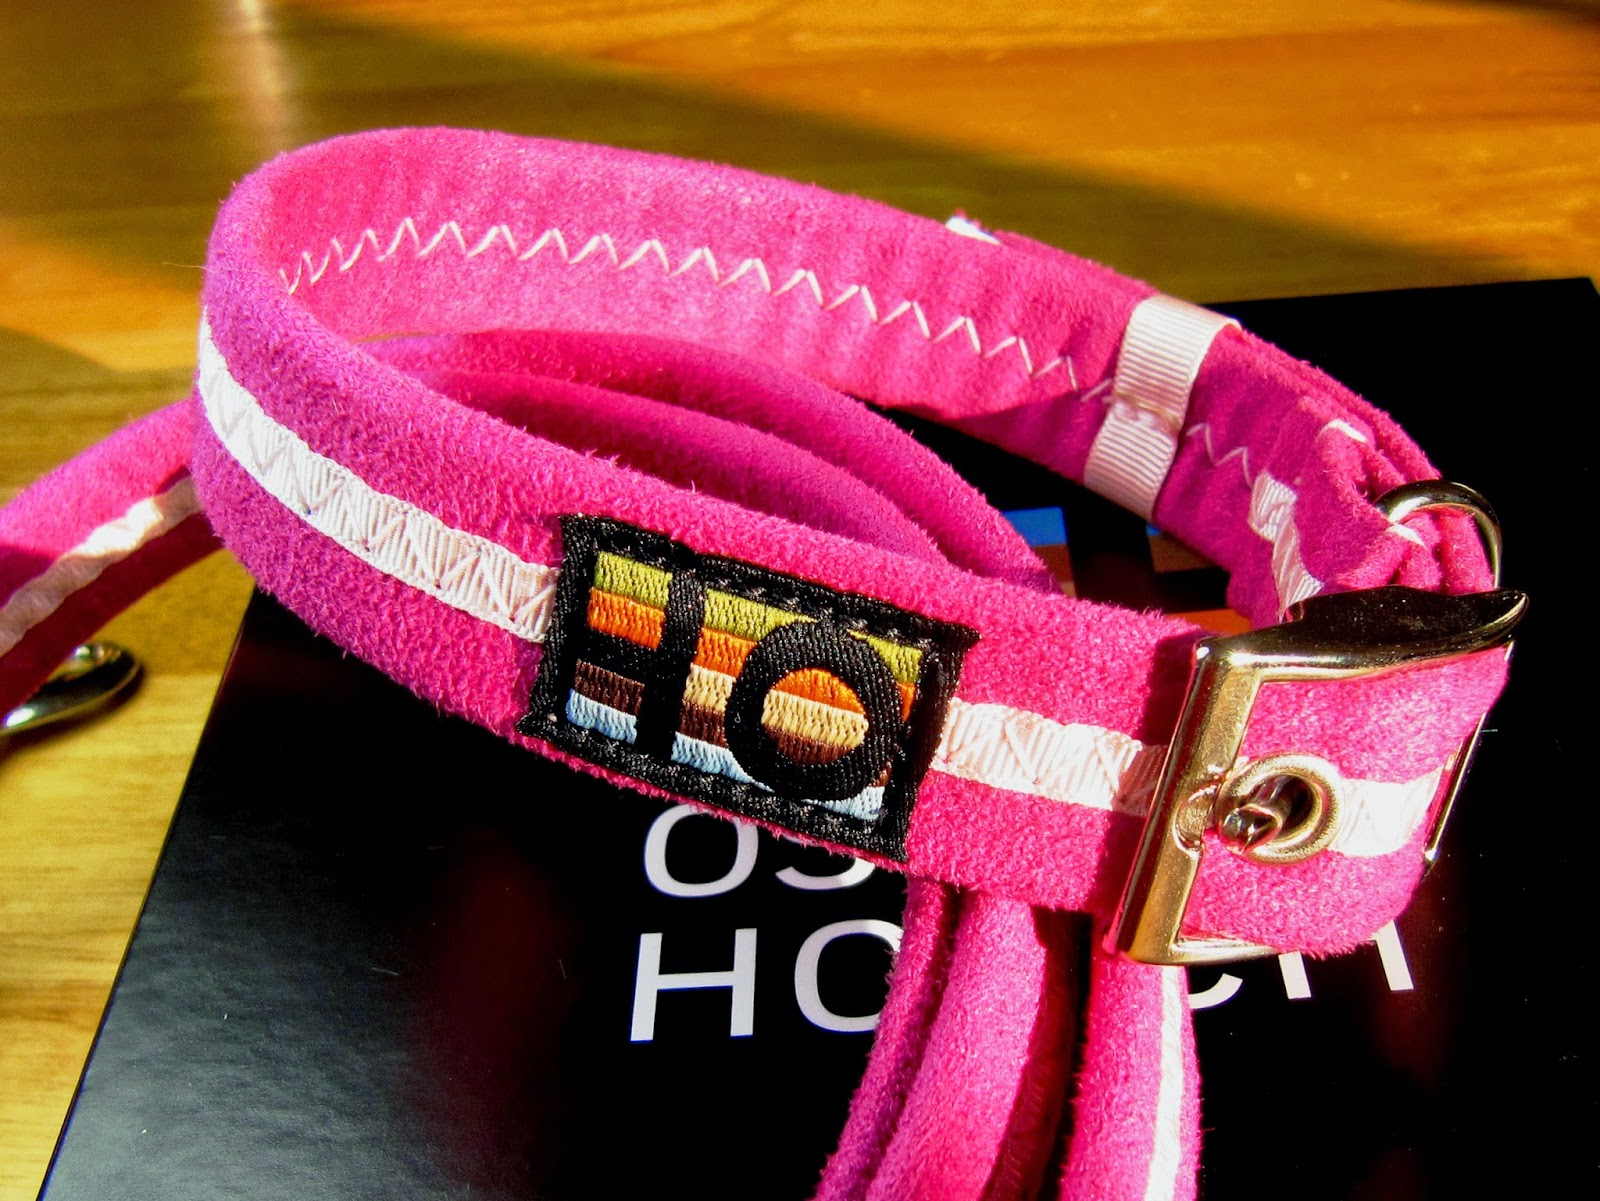 Spaniels Tail Oscar and Hooch Signature Collar and Lead Review